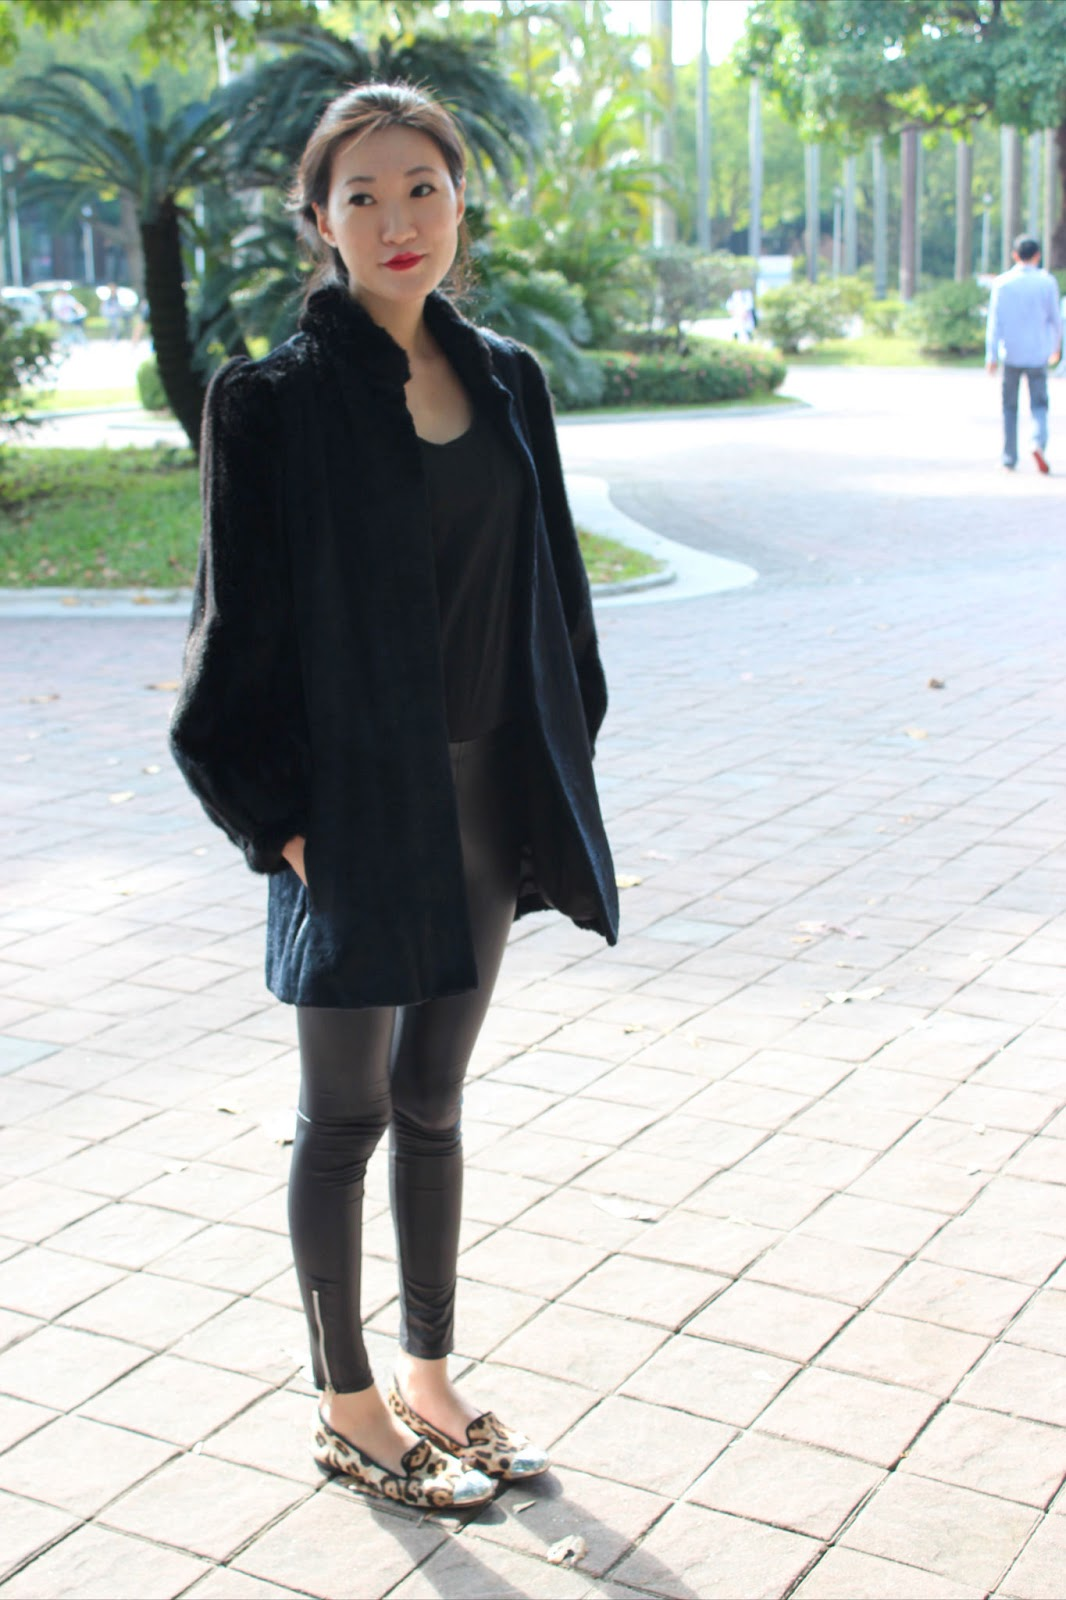 National Taiwan University Student wears a black felt coat with black zippered leather leggings and animal print slippers slip-ons flats with a metallic tip